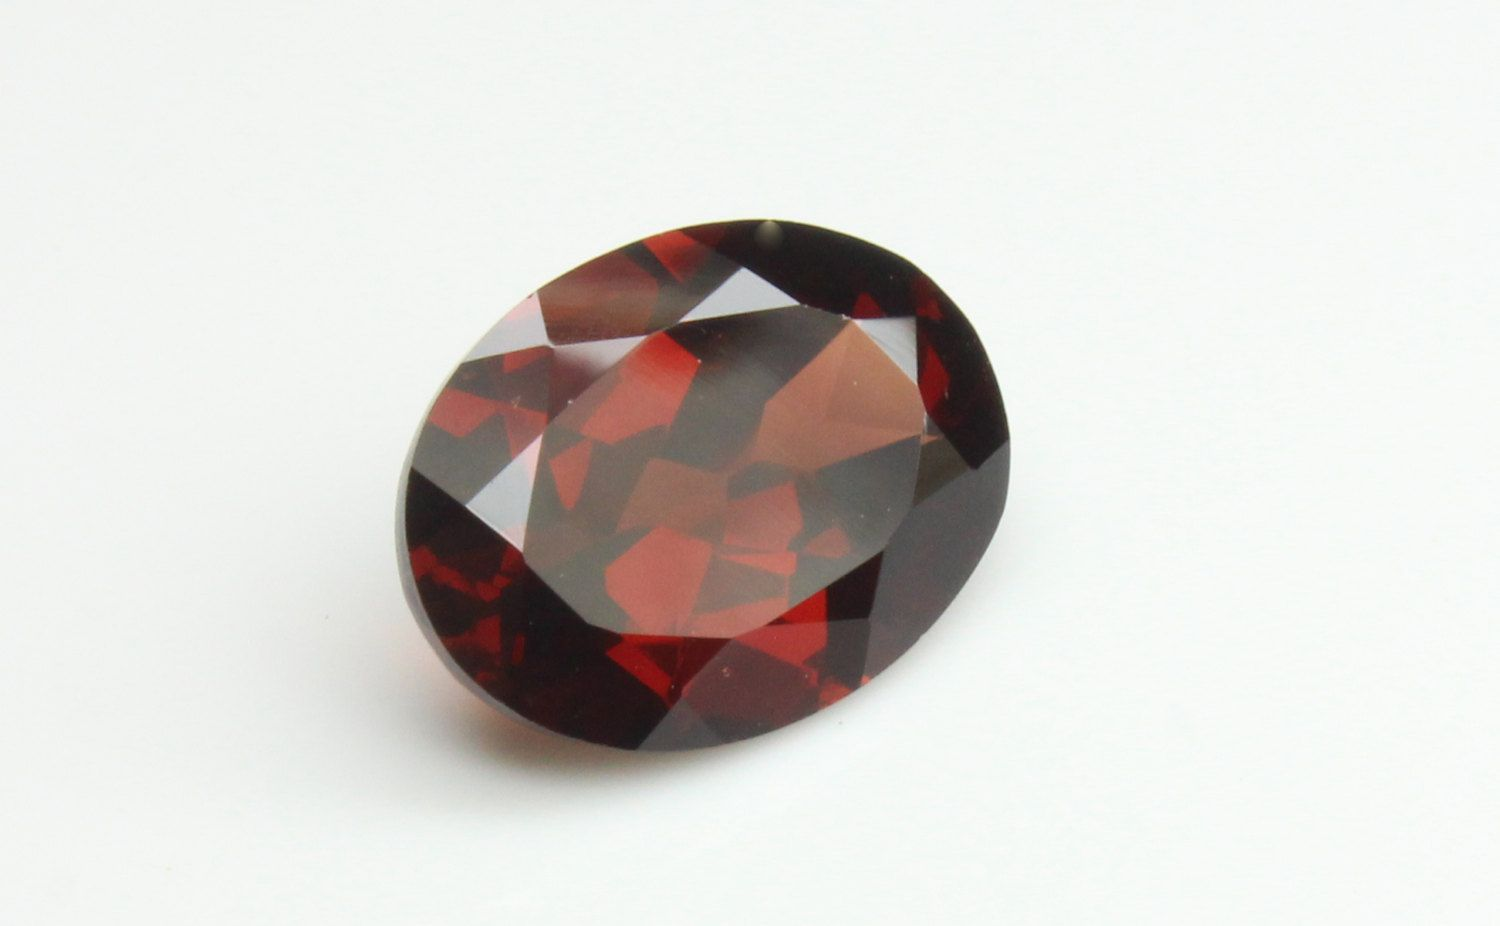 Stunning 5 Ct Natural Unheated Red Garnet Oval Cut by ArkenGems on Etsy